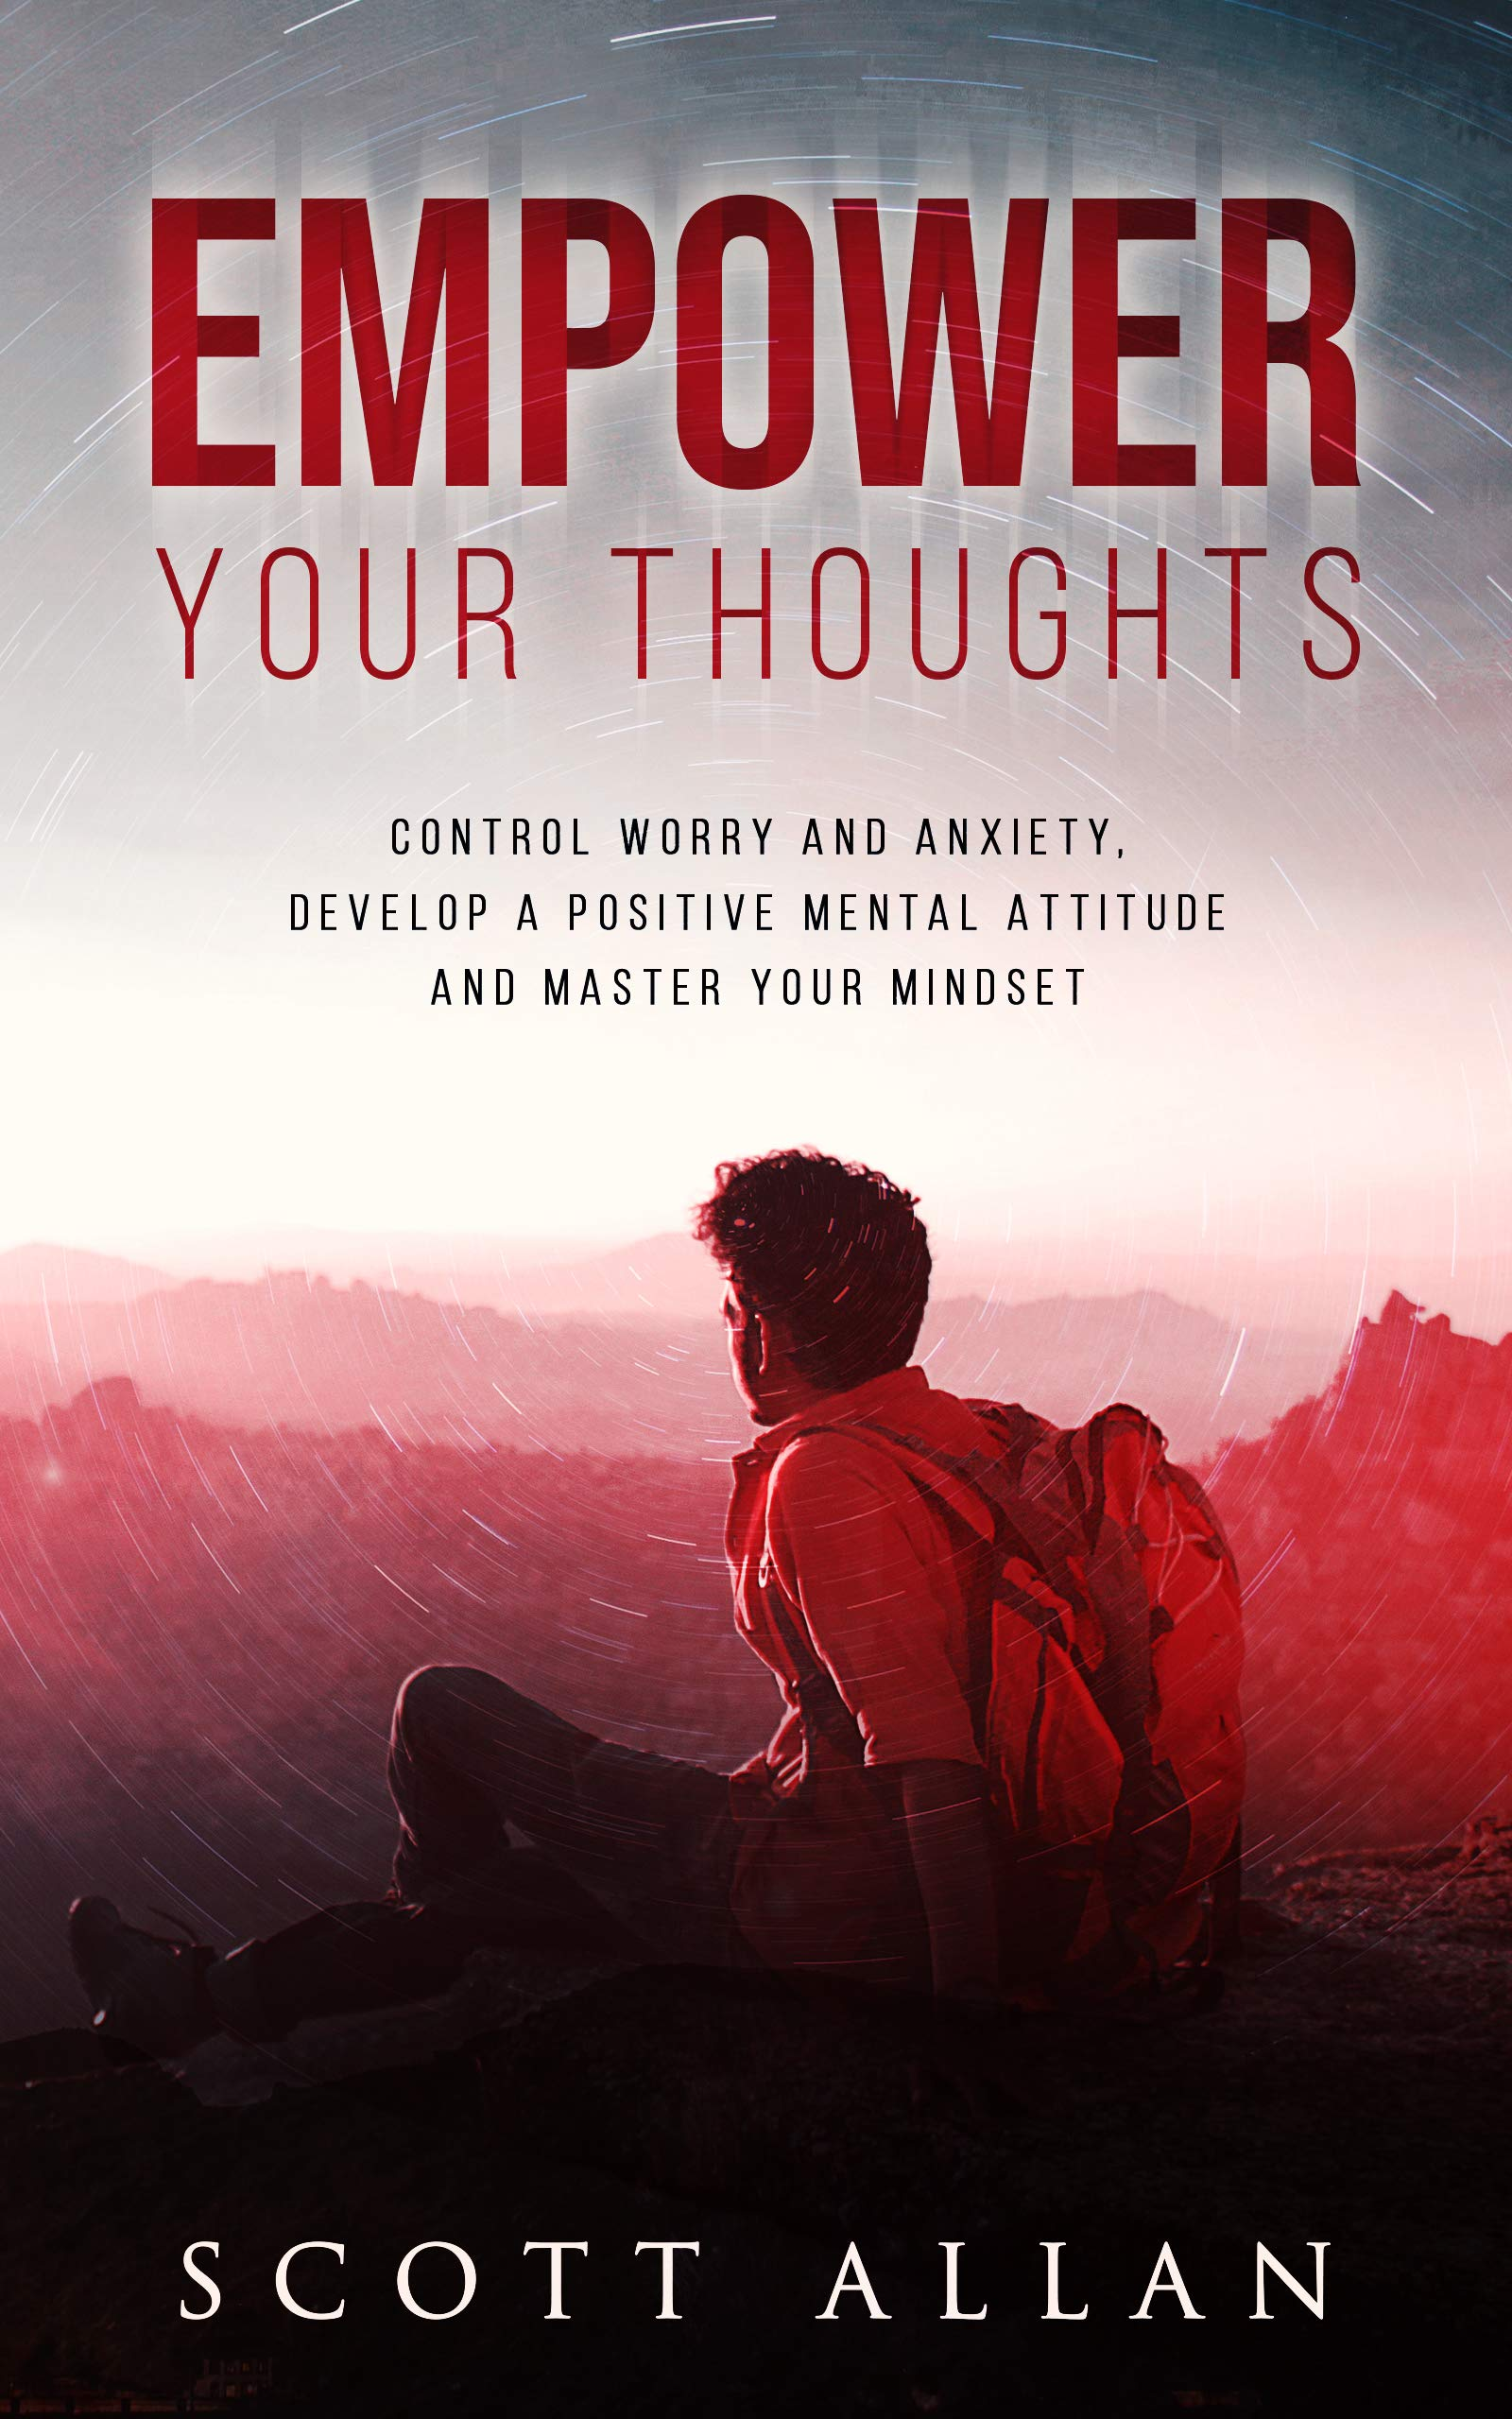 Empower Your Thoughts  Control Worry And Anxiety Develop A Positive Mental Attitude And Master Your Mindset  The Empowered Guru Series Book 2   English Edition